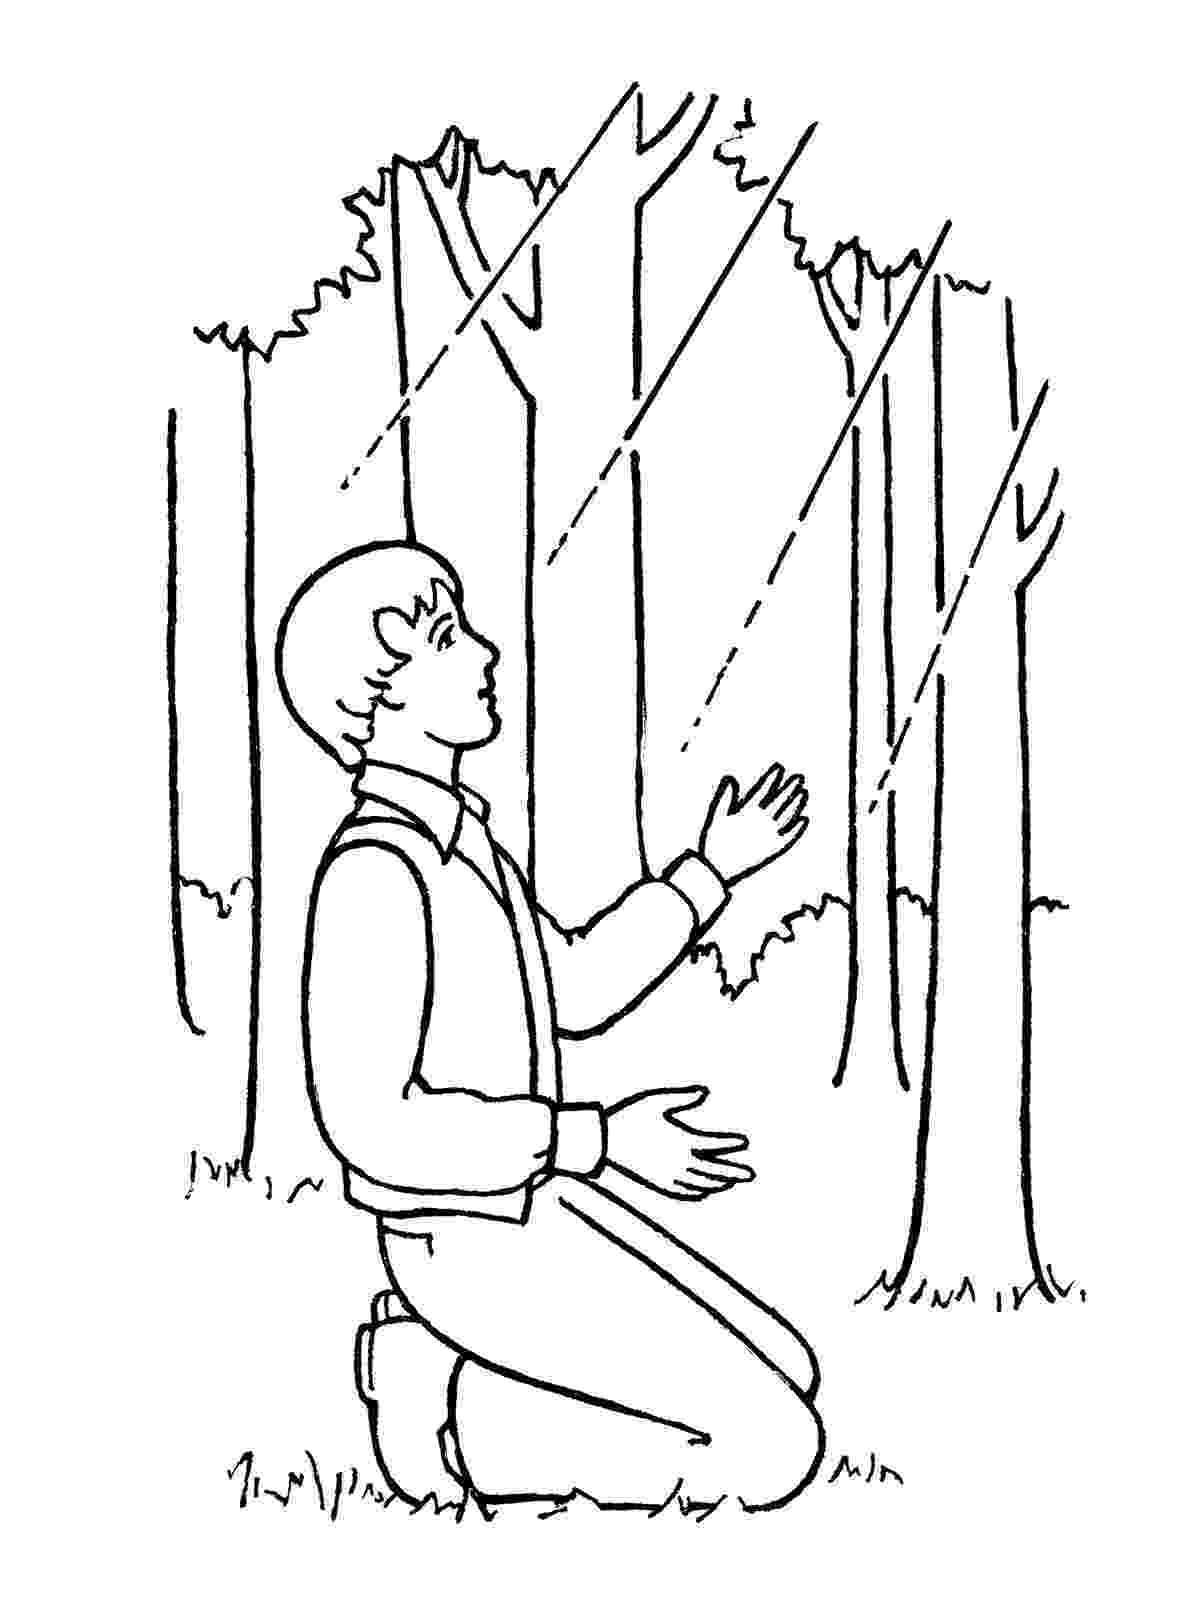 joseph smith coloring pages angel moroni visits joseph smith coloring page free coloring pages smith joseph